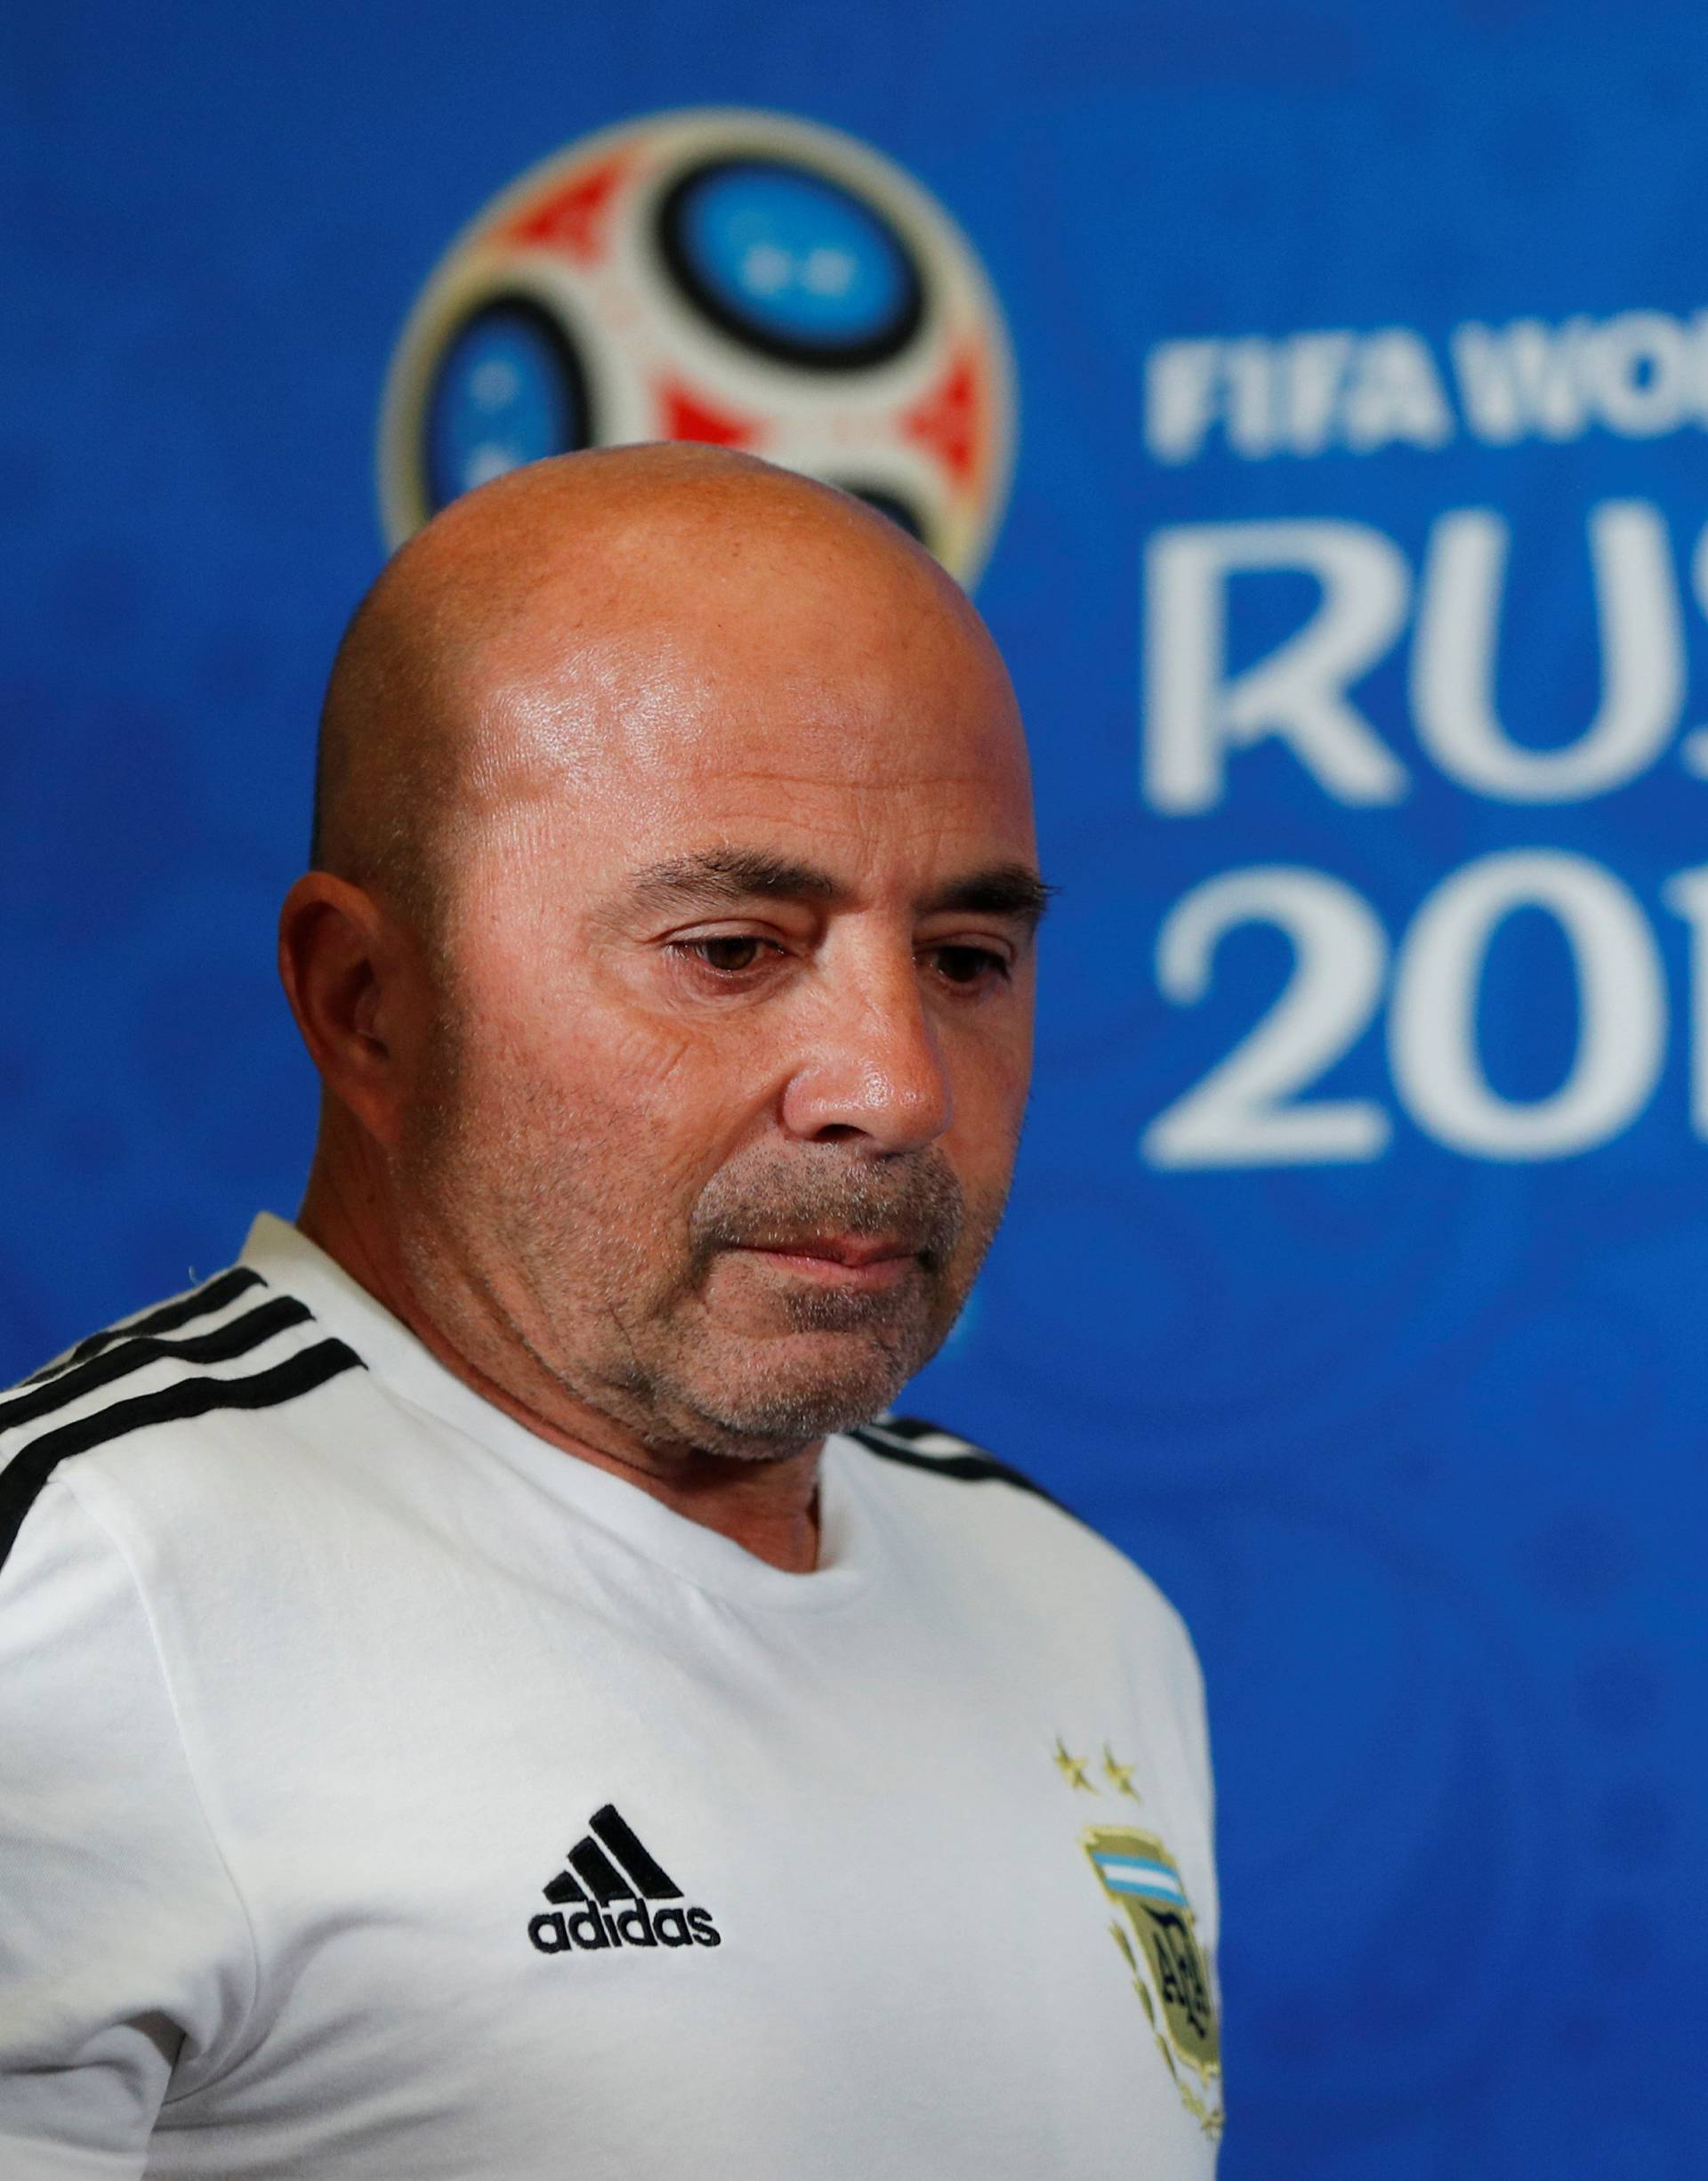 World Cup - Argentina Press Conference